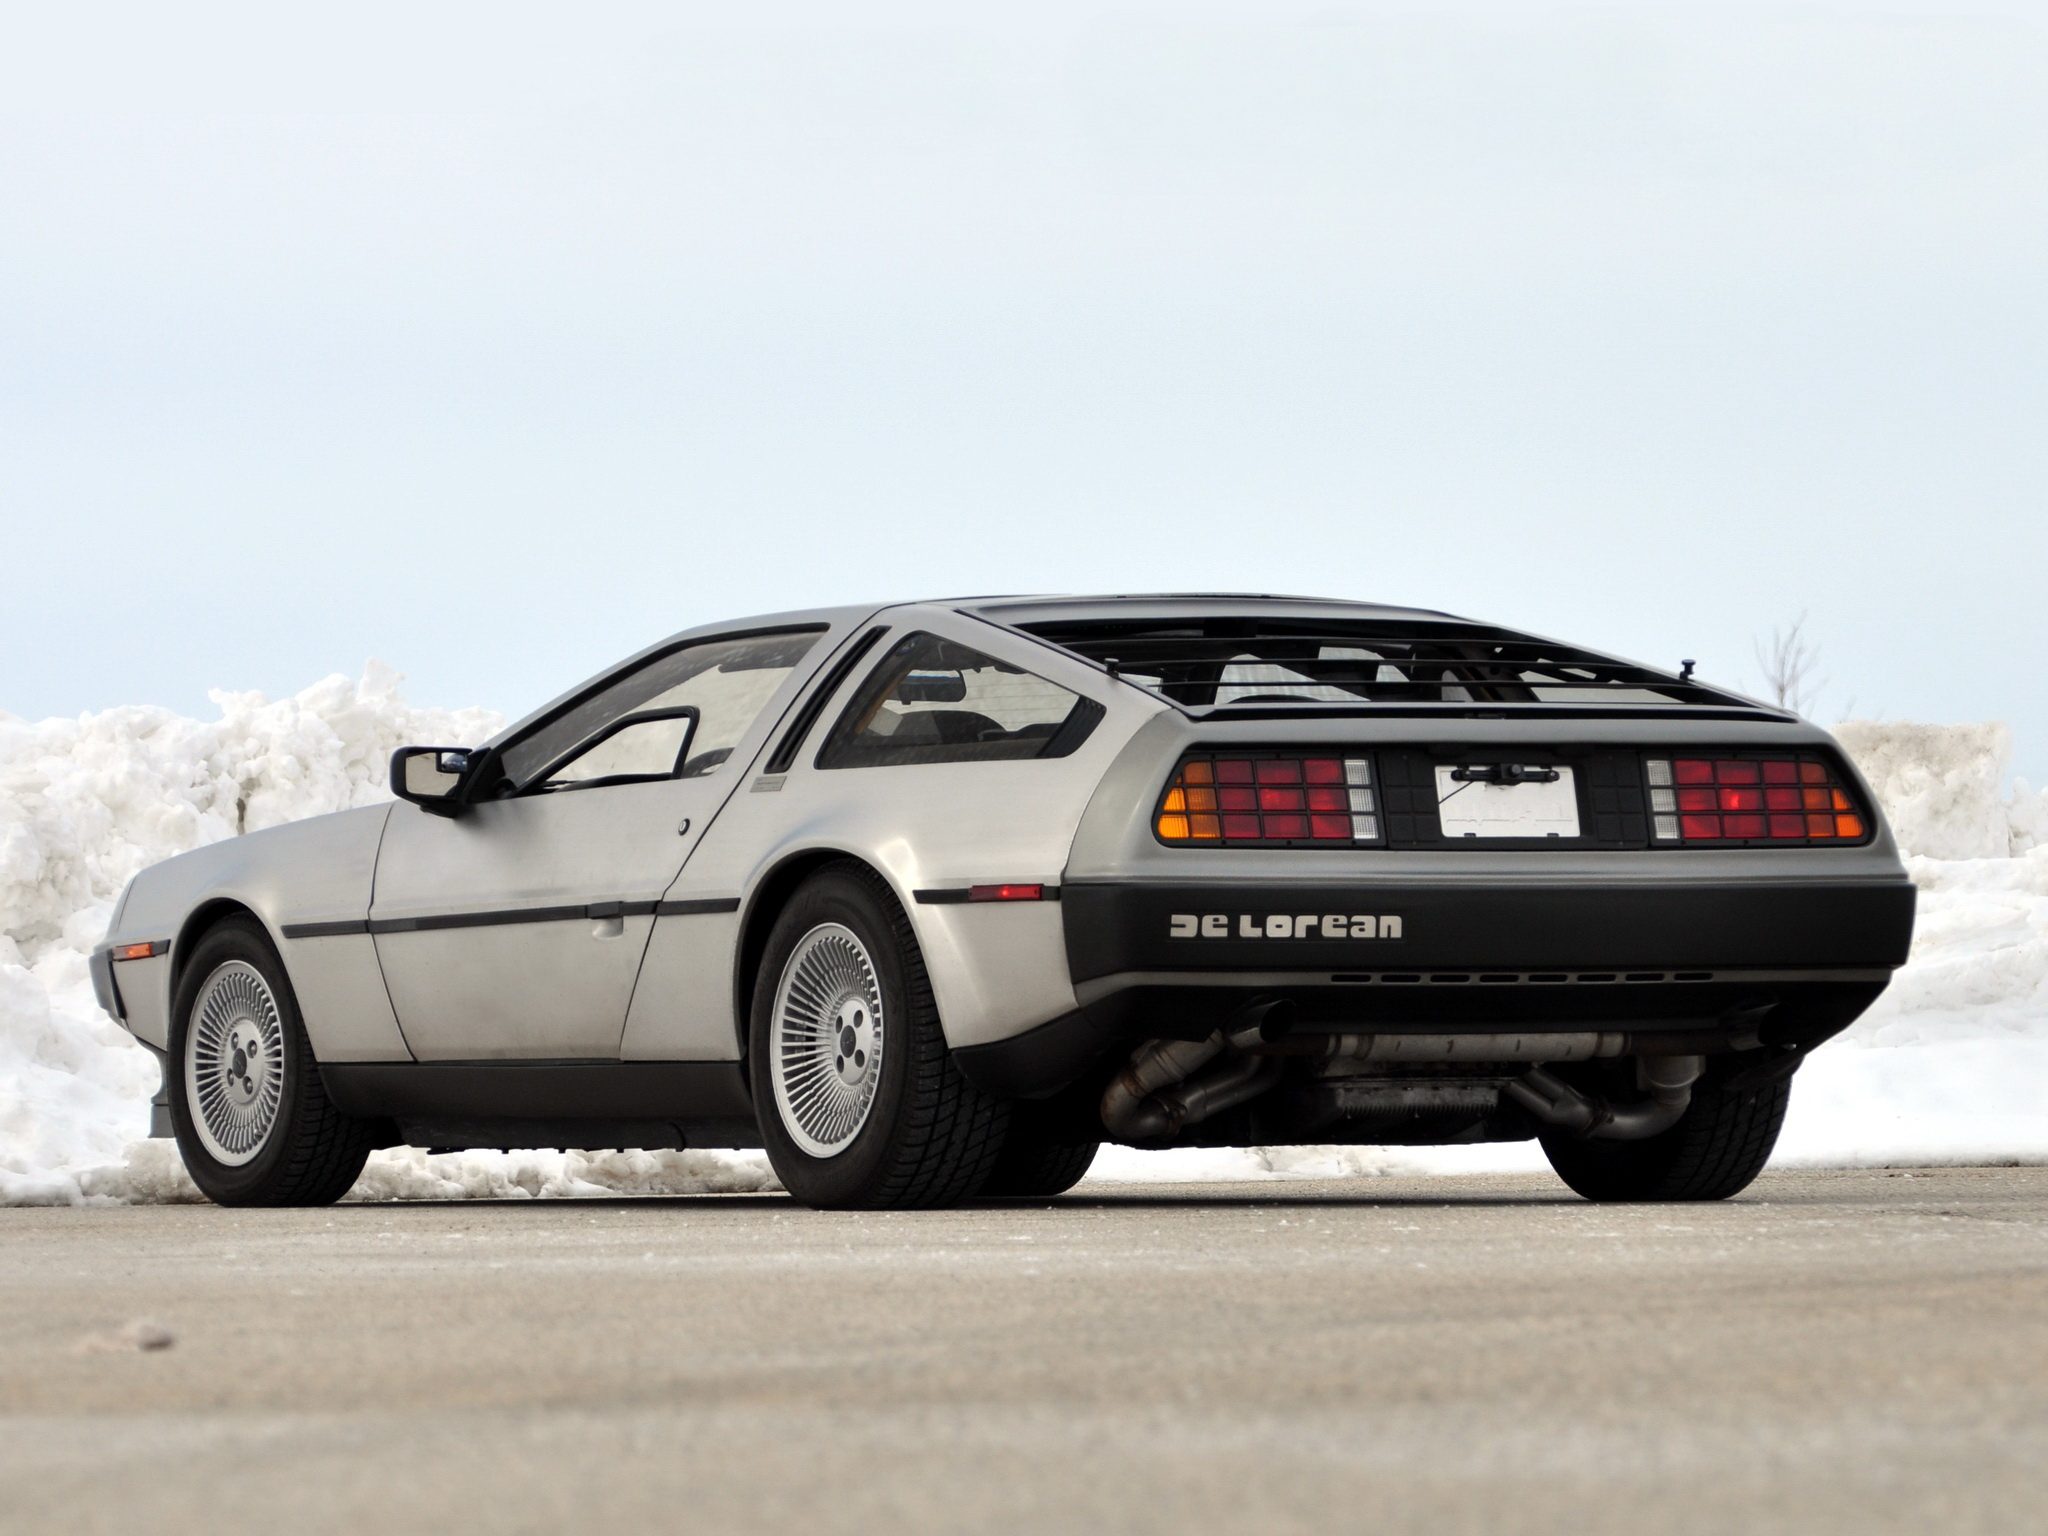 A Small Car >> 1981 DeLorean DMC-12 supercar supercars classic g wallpaper | 2048x1536 | 114912 | WallpaperUP